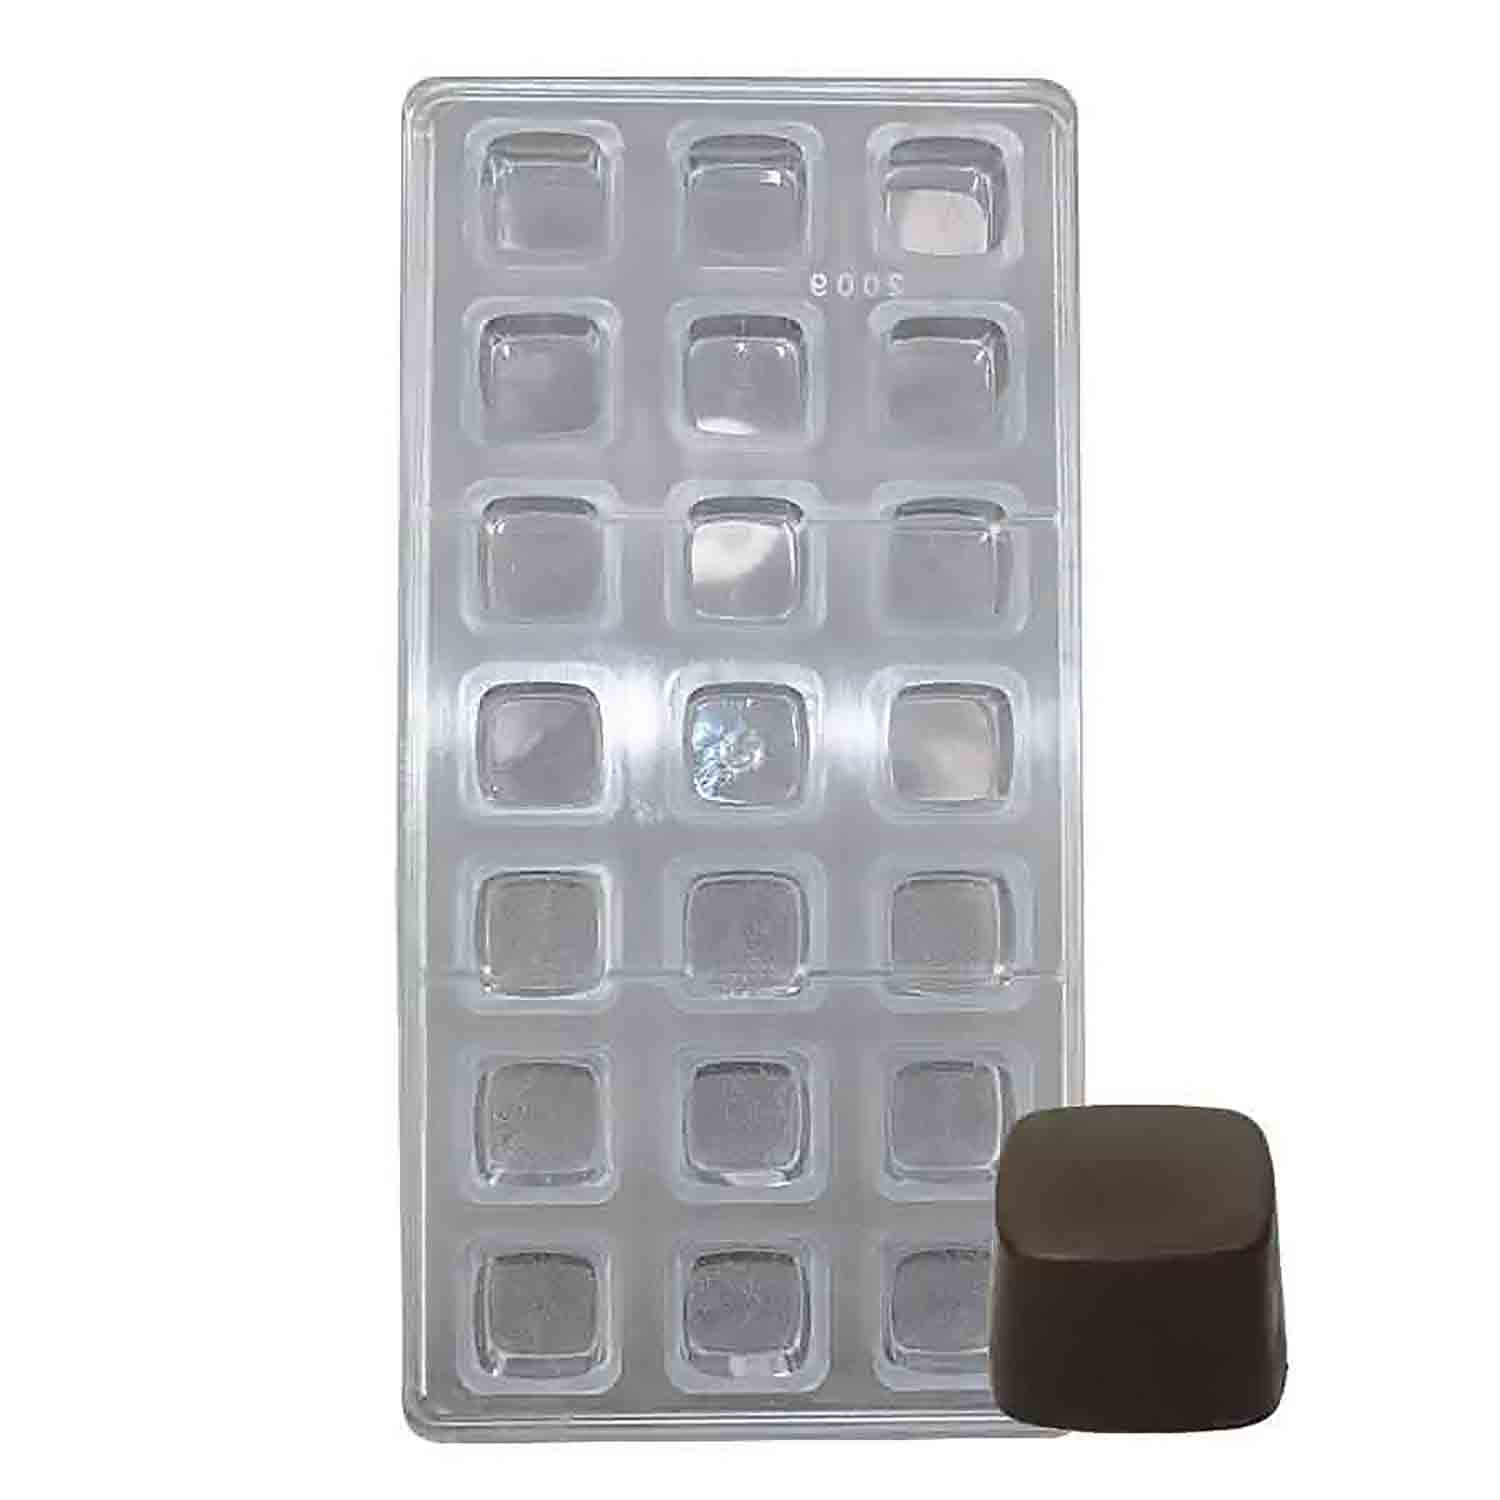 Square Polycarbonate Chocolate Candy Mold